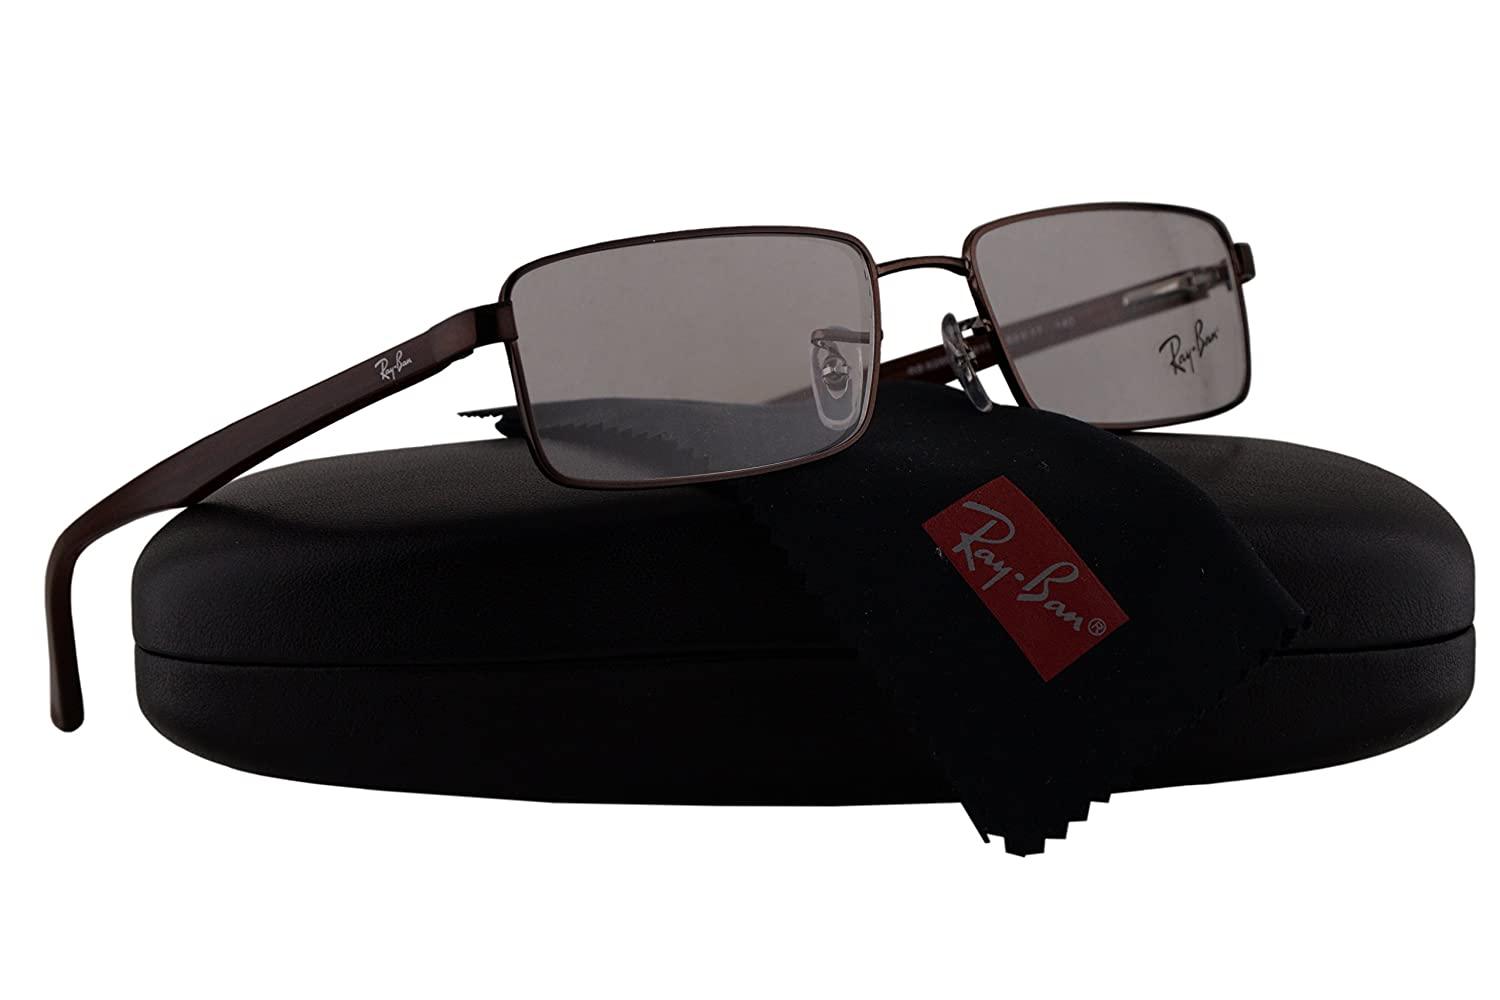 e1975397a96 Ray Ban Sunglasses Rb 8125 « One More Soul